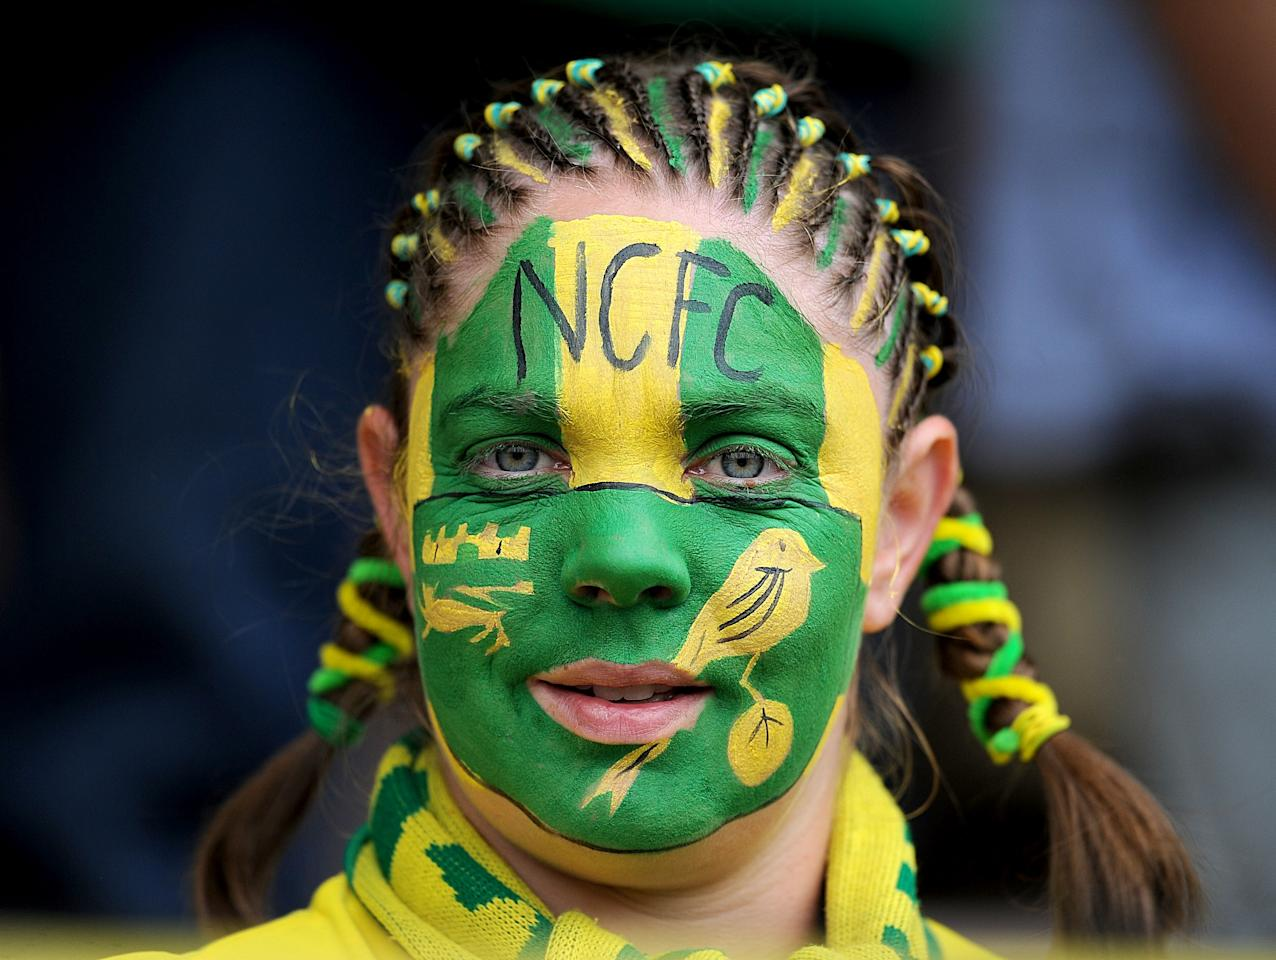 A Norwich City fan shows off her facepaint in the stands before kick-off